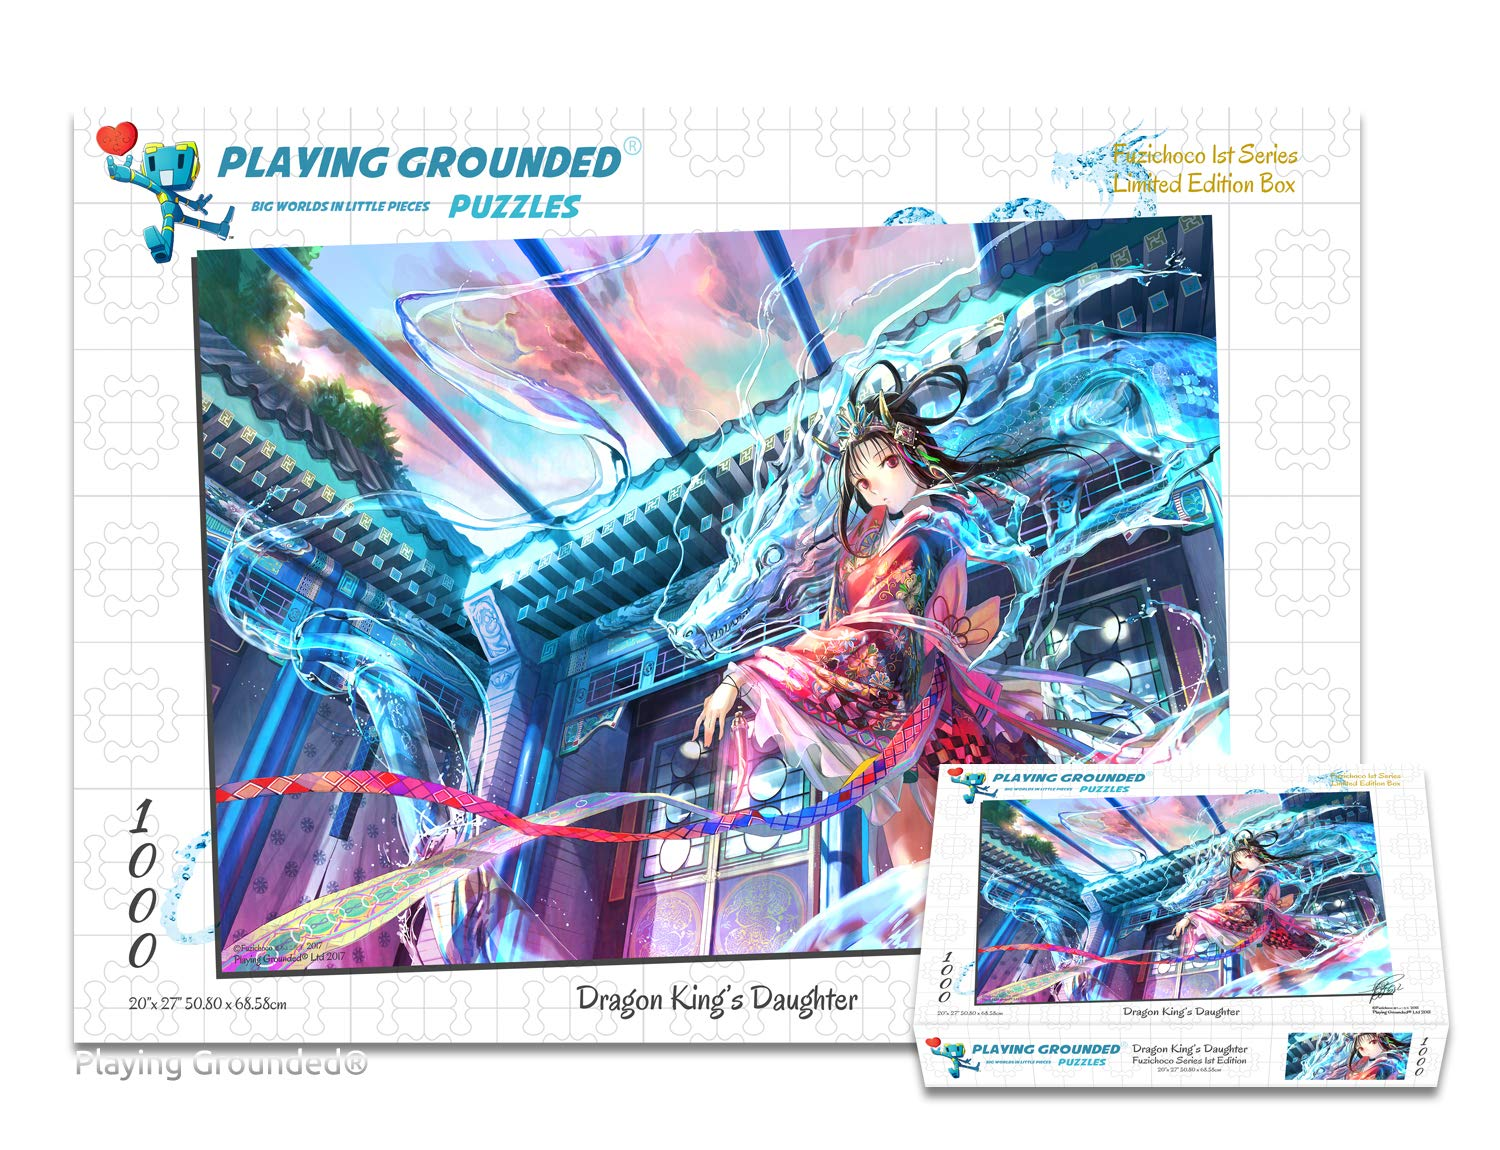 Playing Grounded Limited Edition Jigsaw Puzzle 1000 Pieces Dragon King's Daughter by Fuzichoco Anime Collectible Anime Puzzle Dragon Puzzle Fantasy Puzzle Japanese Jigsaw Puzzle by Playing Grounded